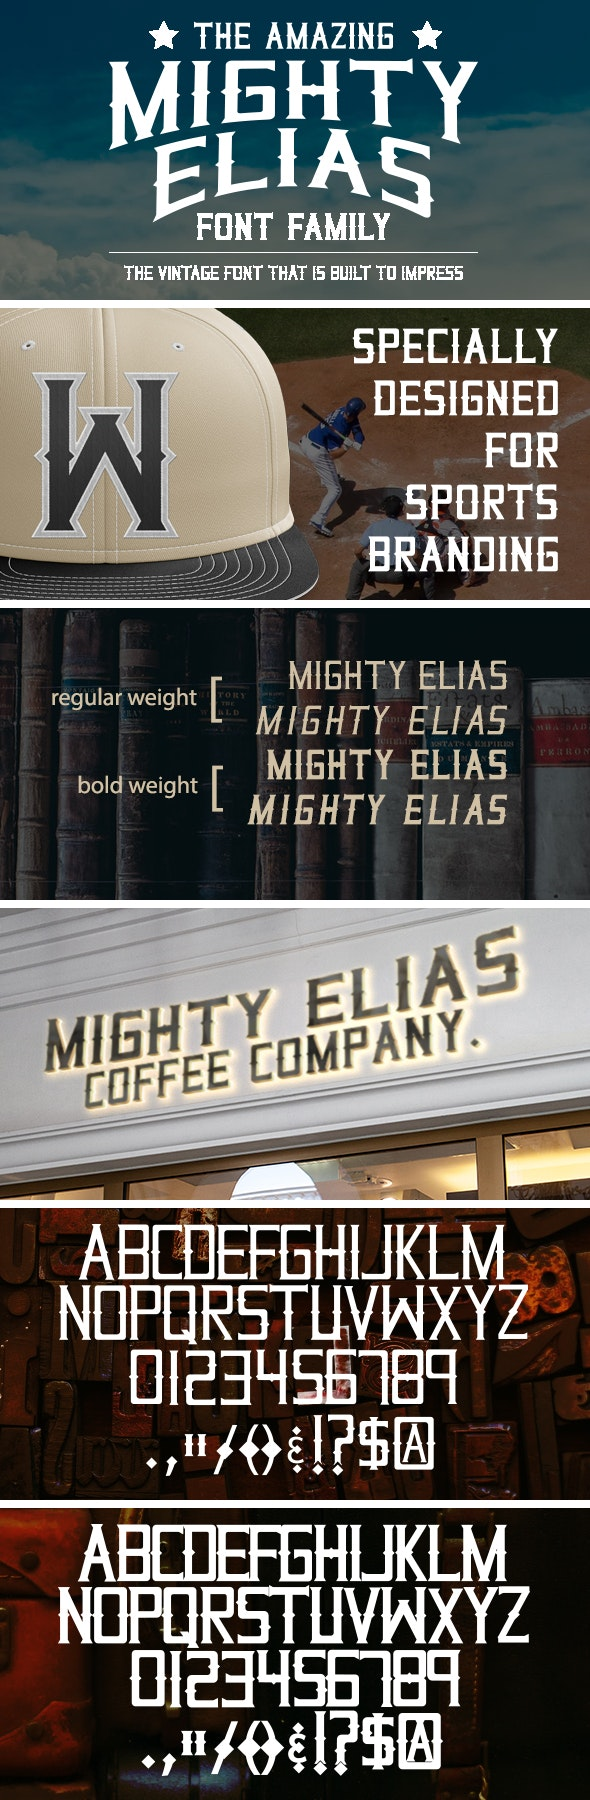 Mighty Elias Vintage Font Family - Serif Fonts